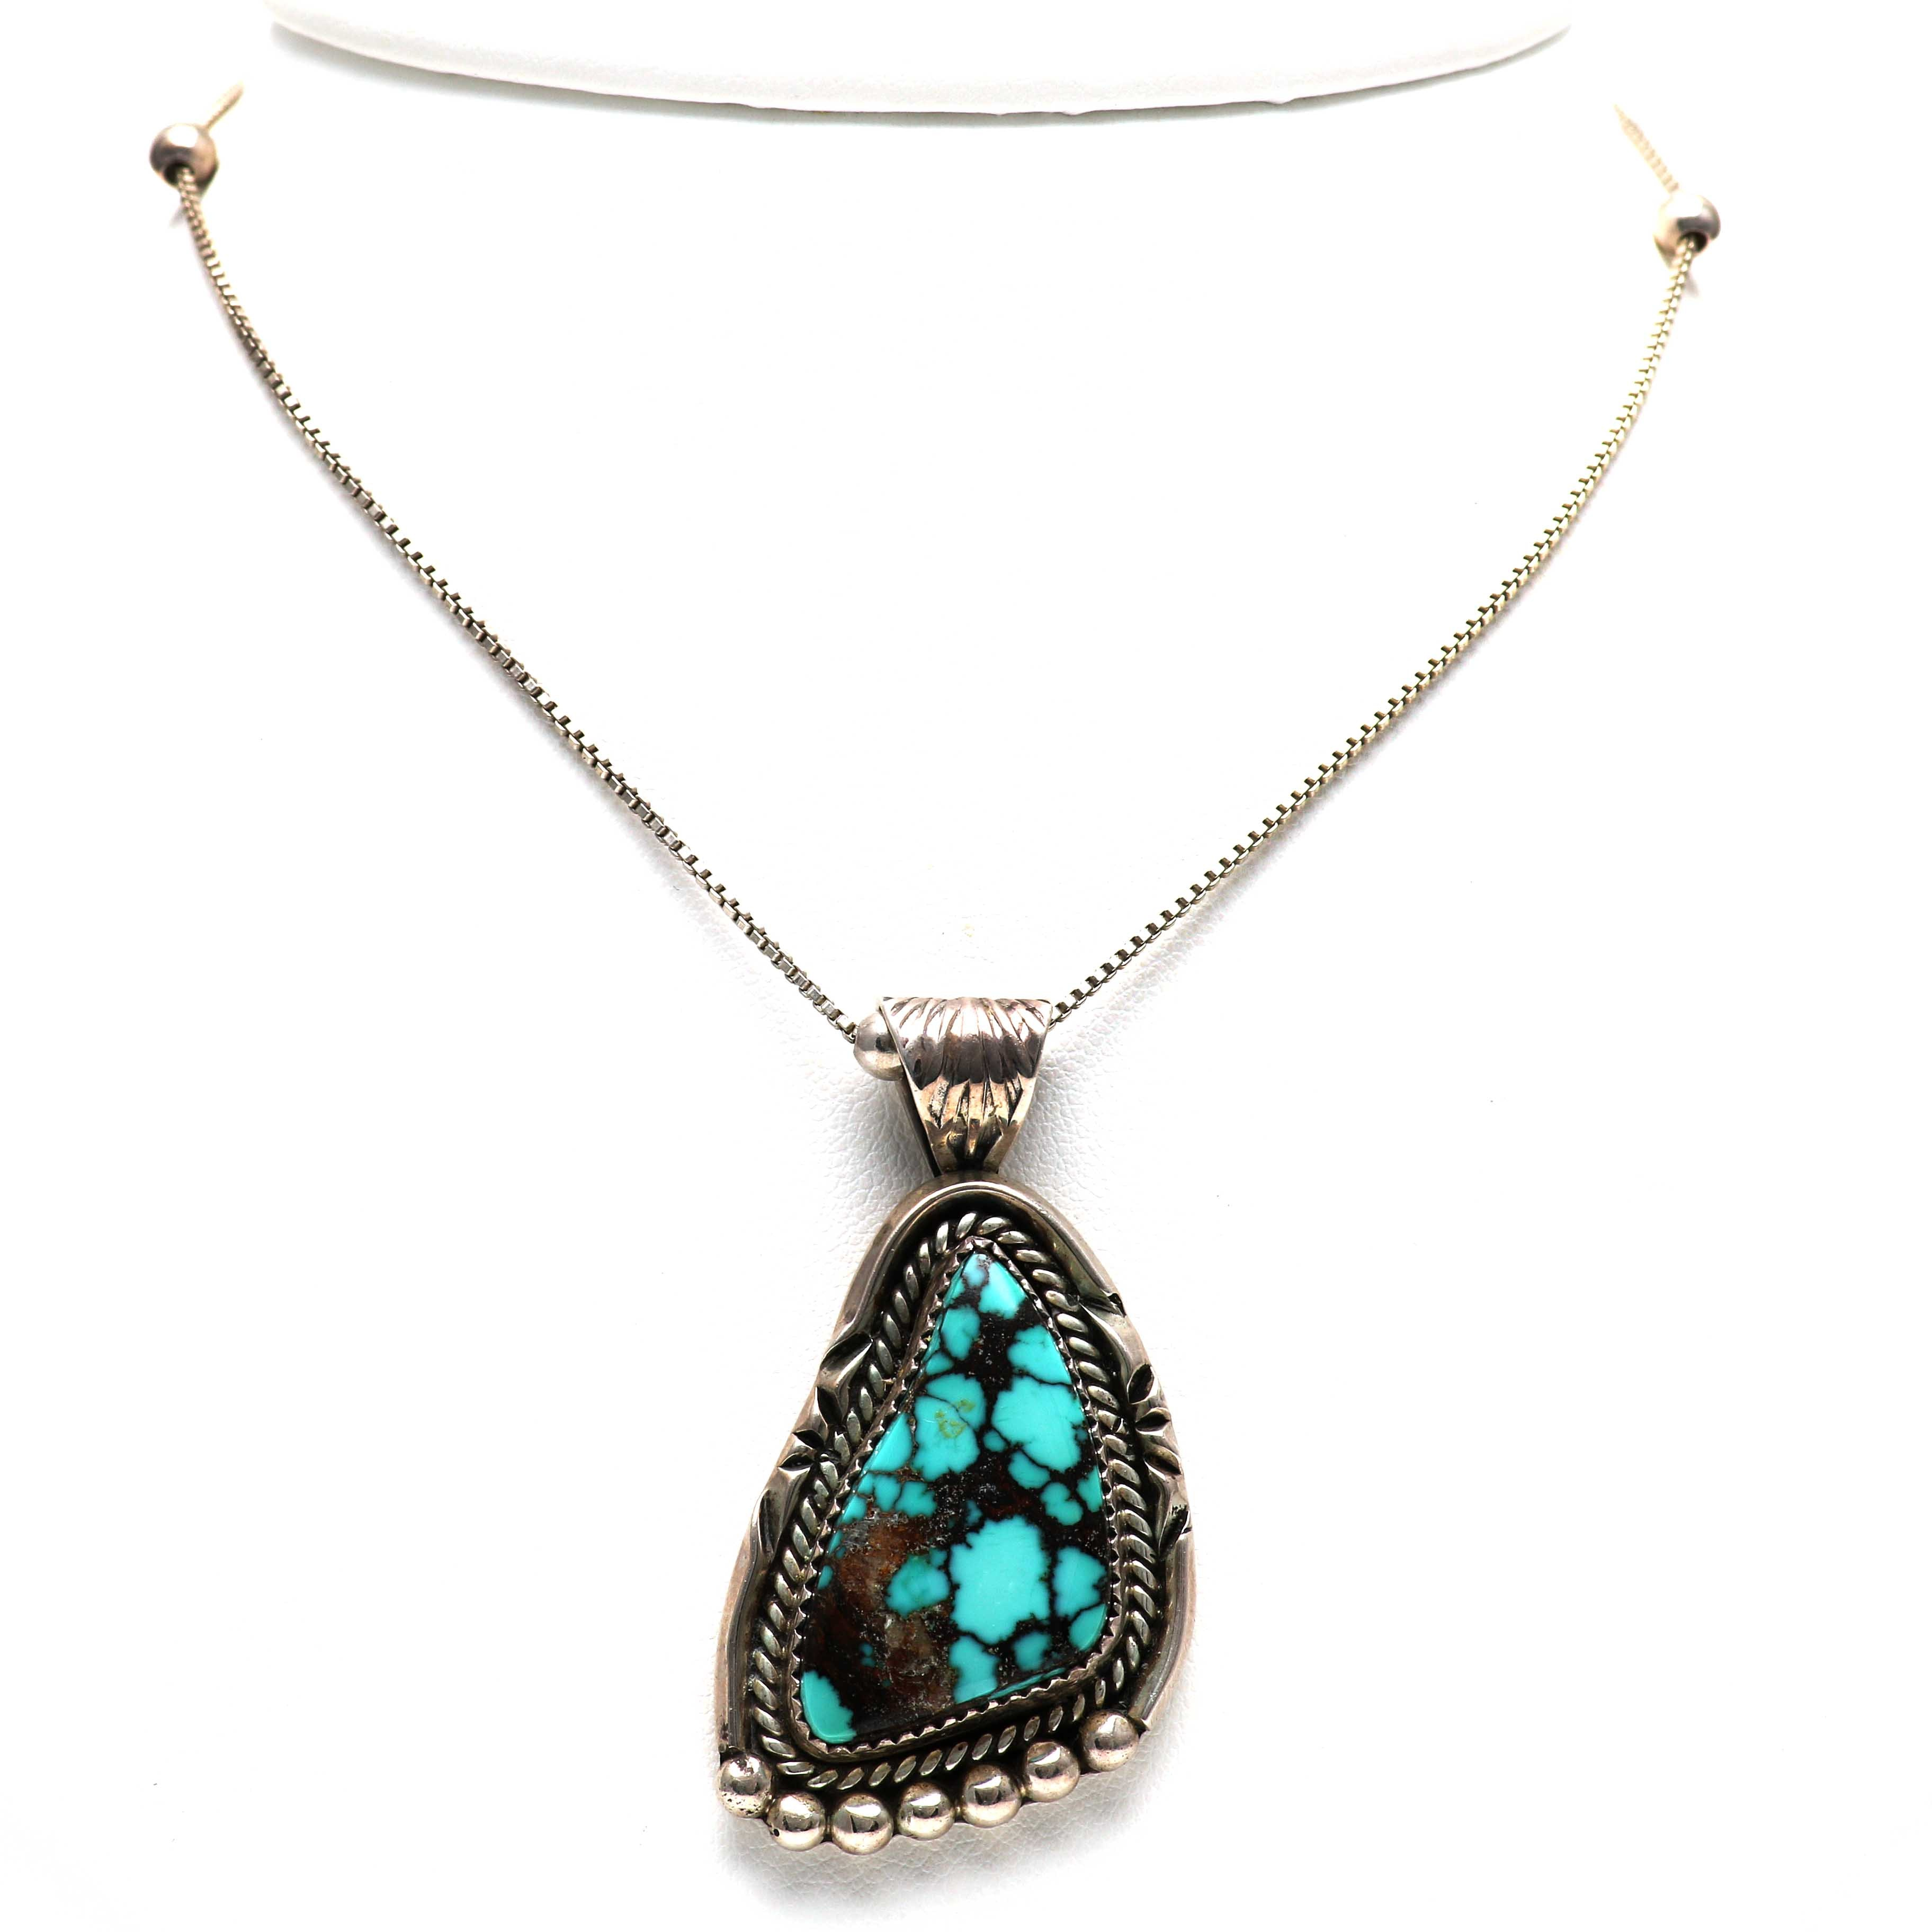 Navajo Sterling Silver Turquoise Necklace By J. Abeyta